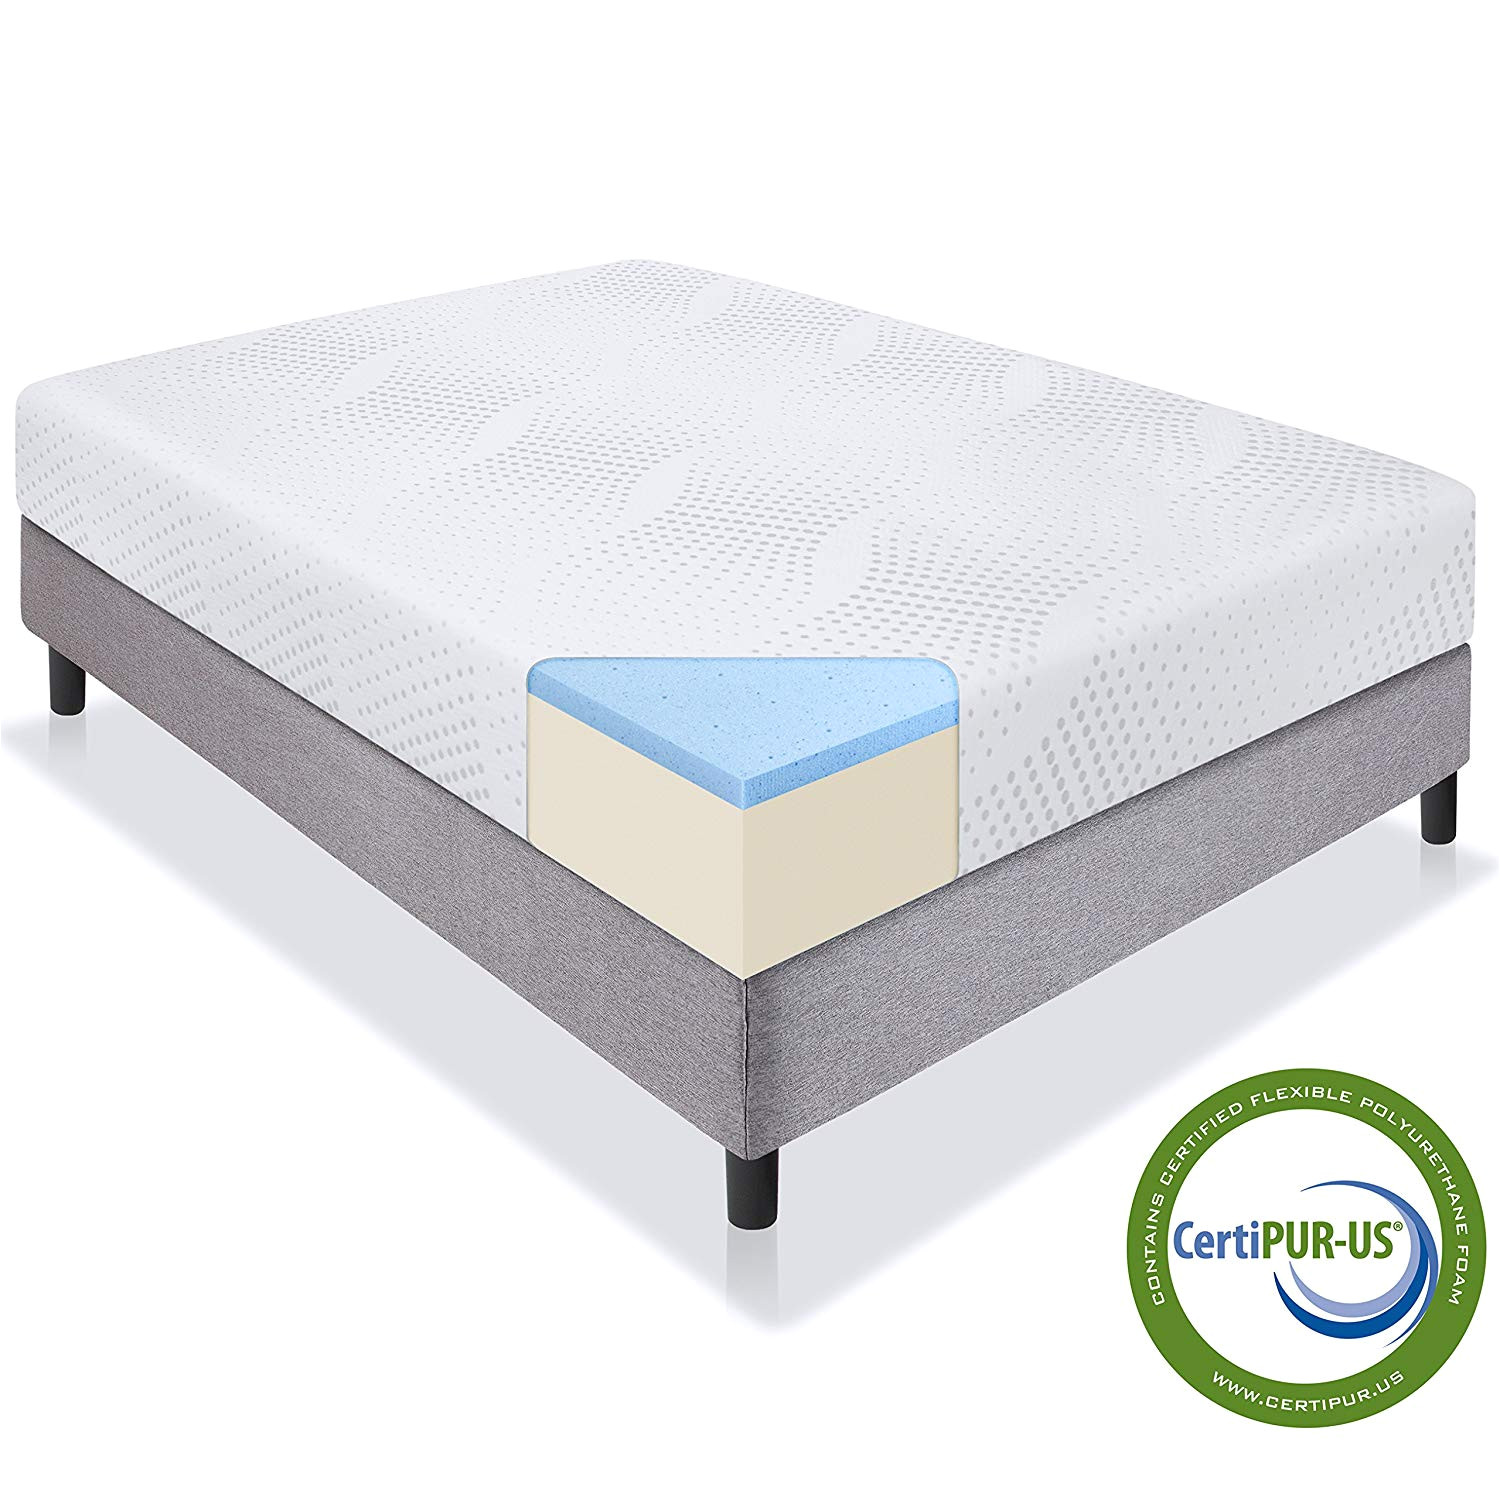 amazon com best choice products 10 dual layered gel memory foam mattress twin certipur us home kitchen